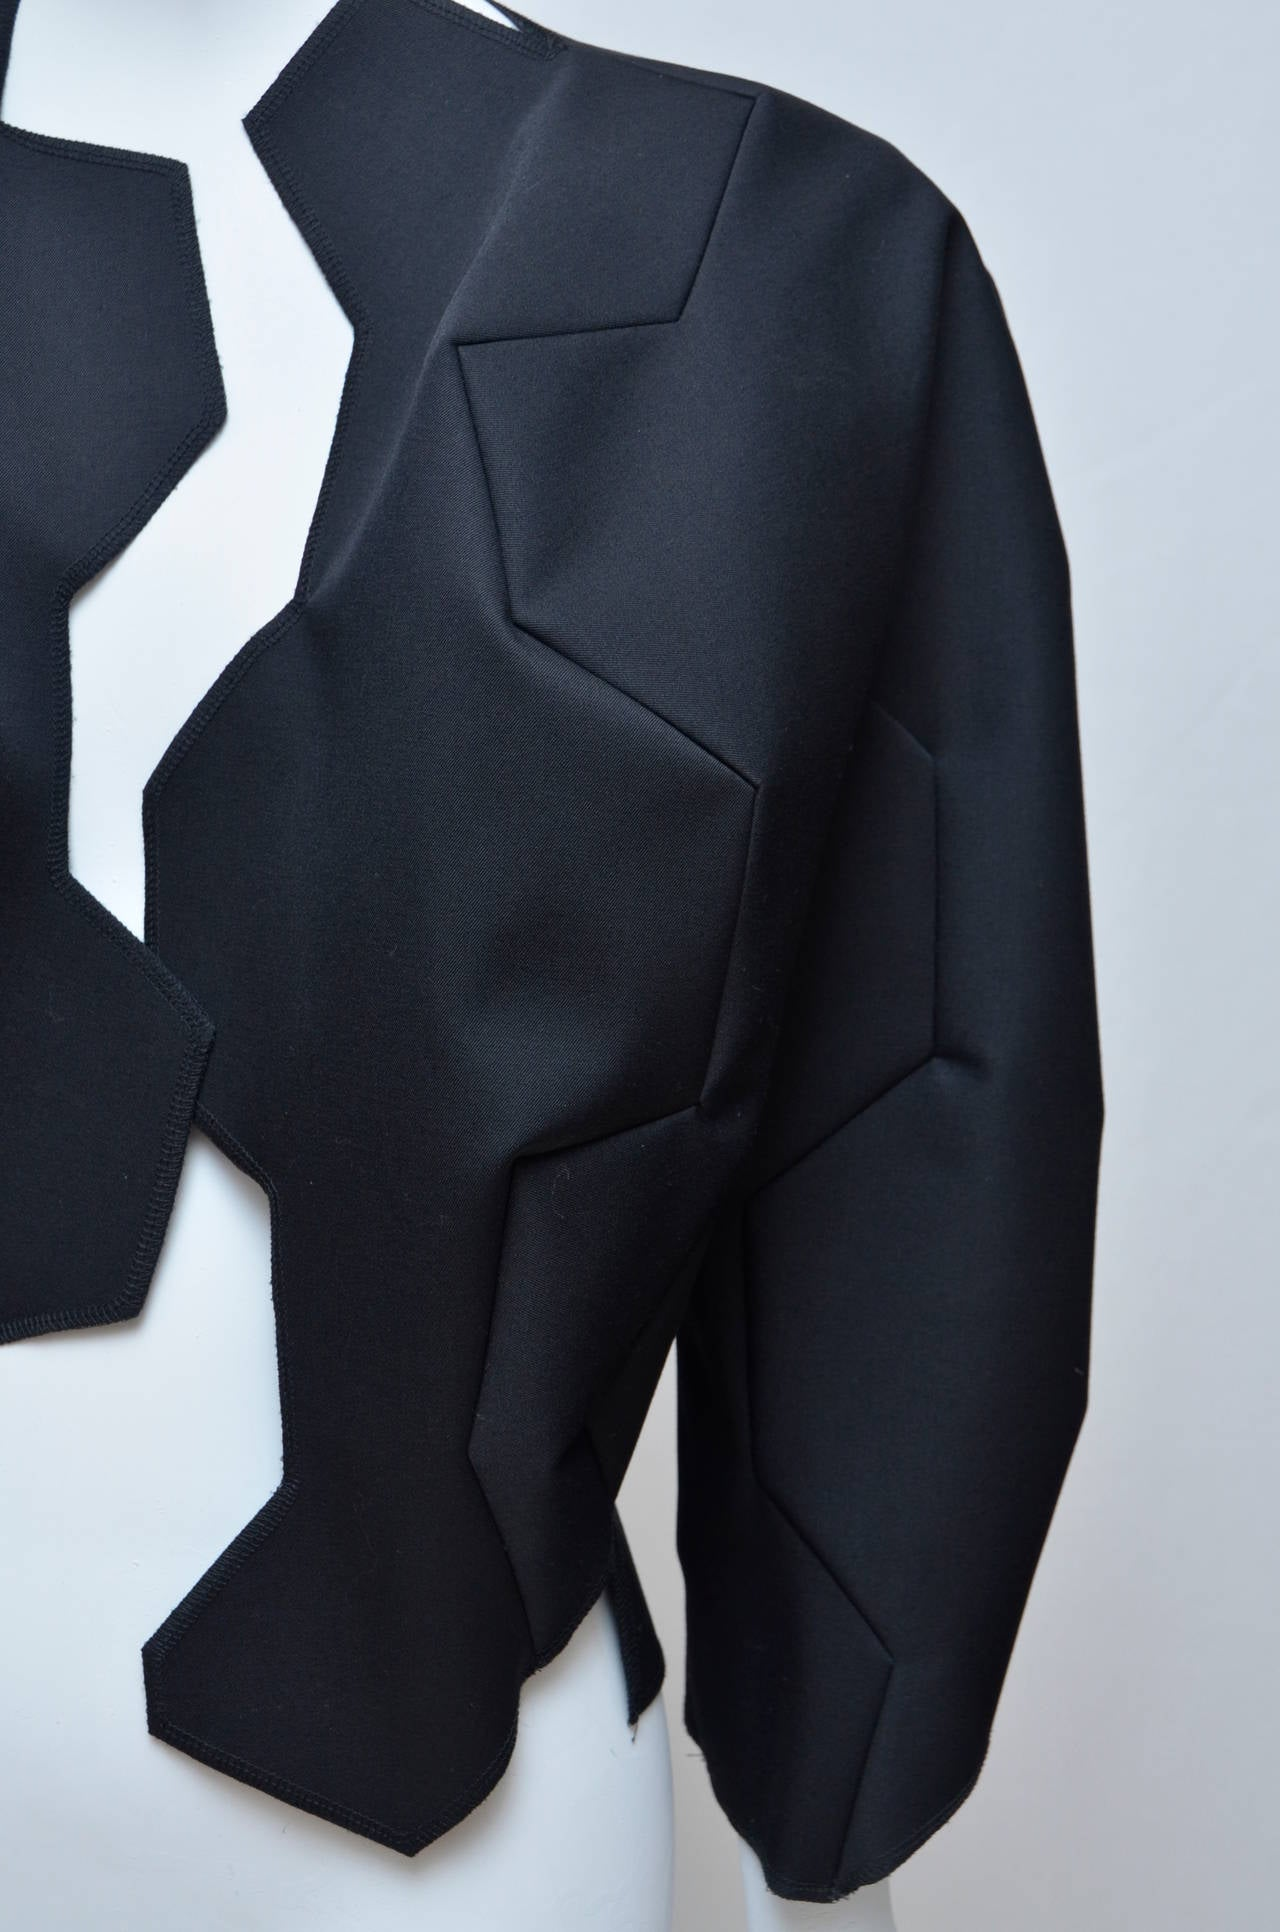 Comme Des Garcons Football Soccer Set Runway Jacket  and Skirt Ad 2008 In New Condition For Sale In Hollywood, FL